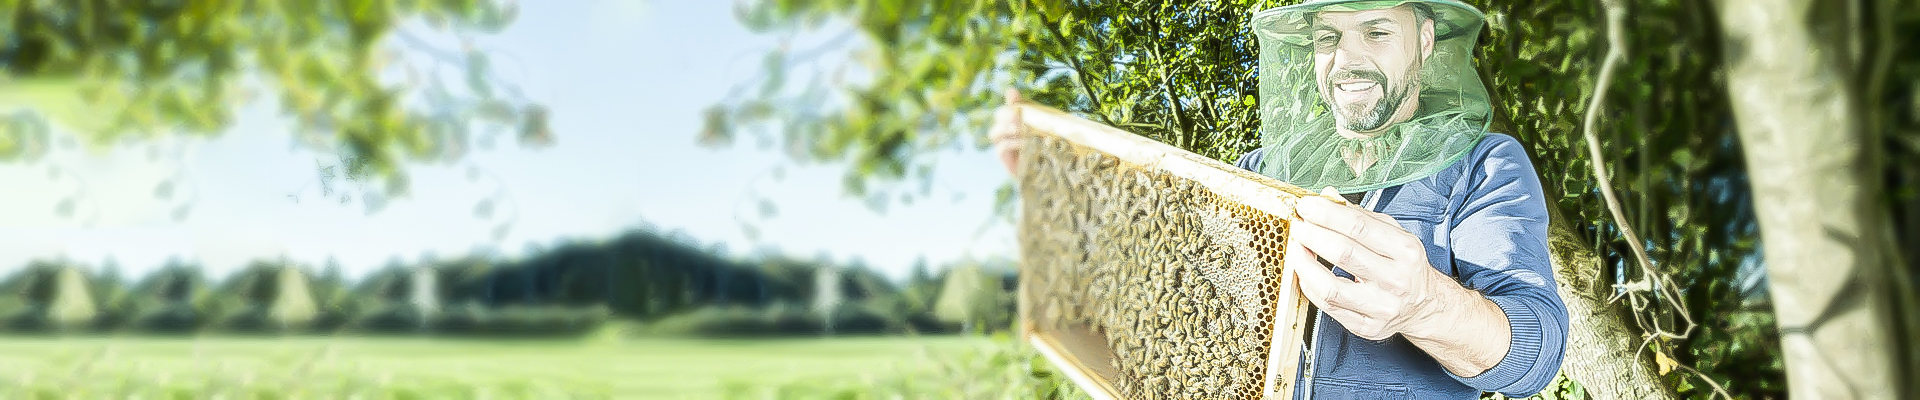 Honey Bee Farming As A Hobby: A Great Step To Minimize The Decrease Of Honey Bee Population